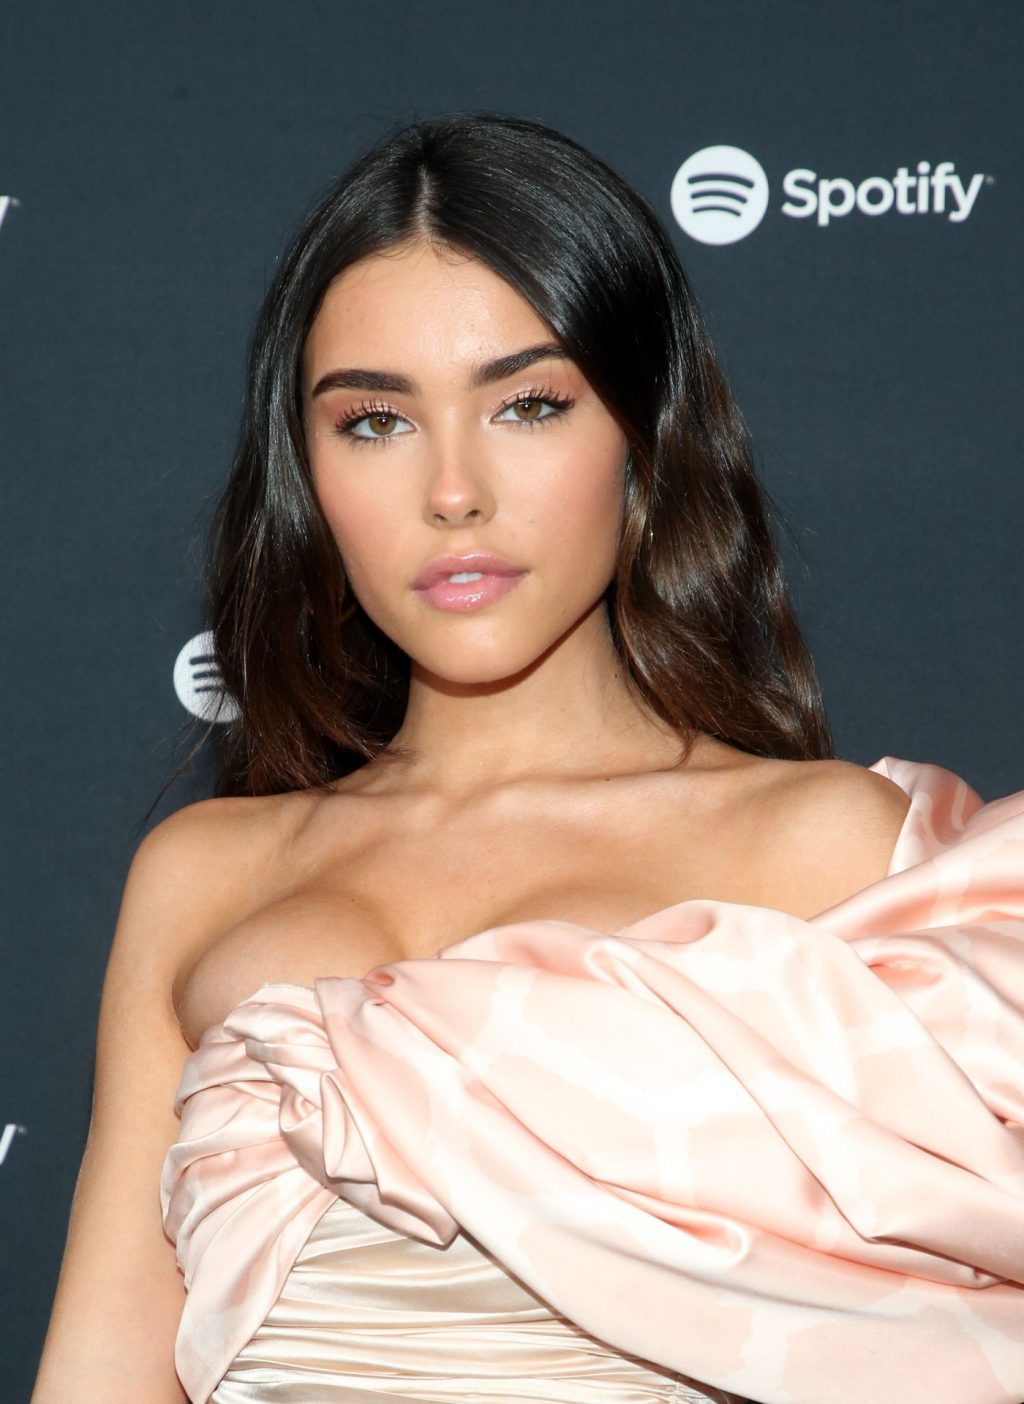 Madison Beer Displays Her Boobs at the Spotify Best New Artist Party (65 Photos)